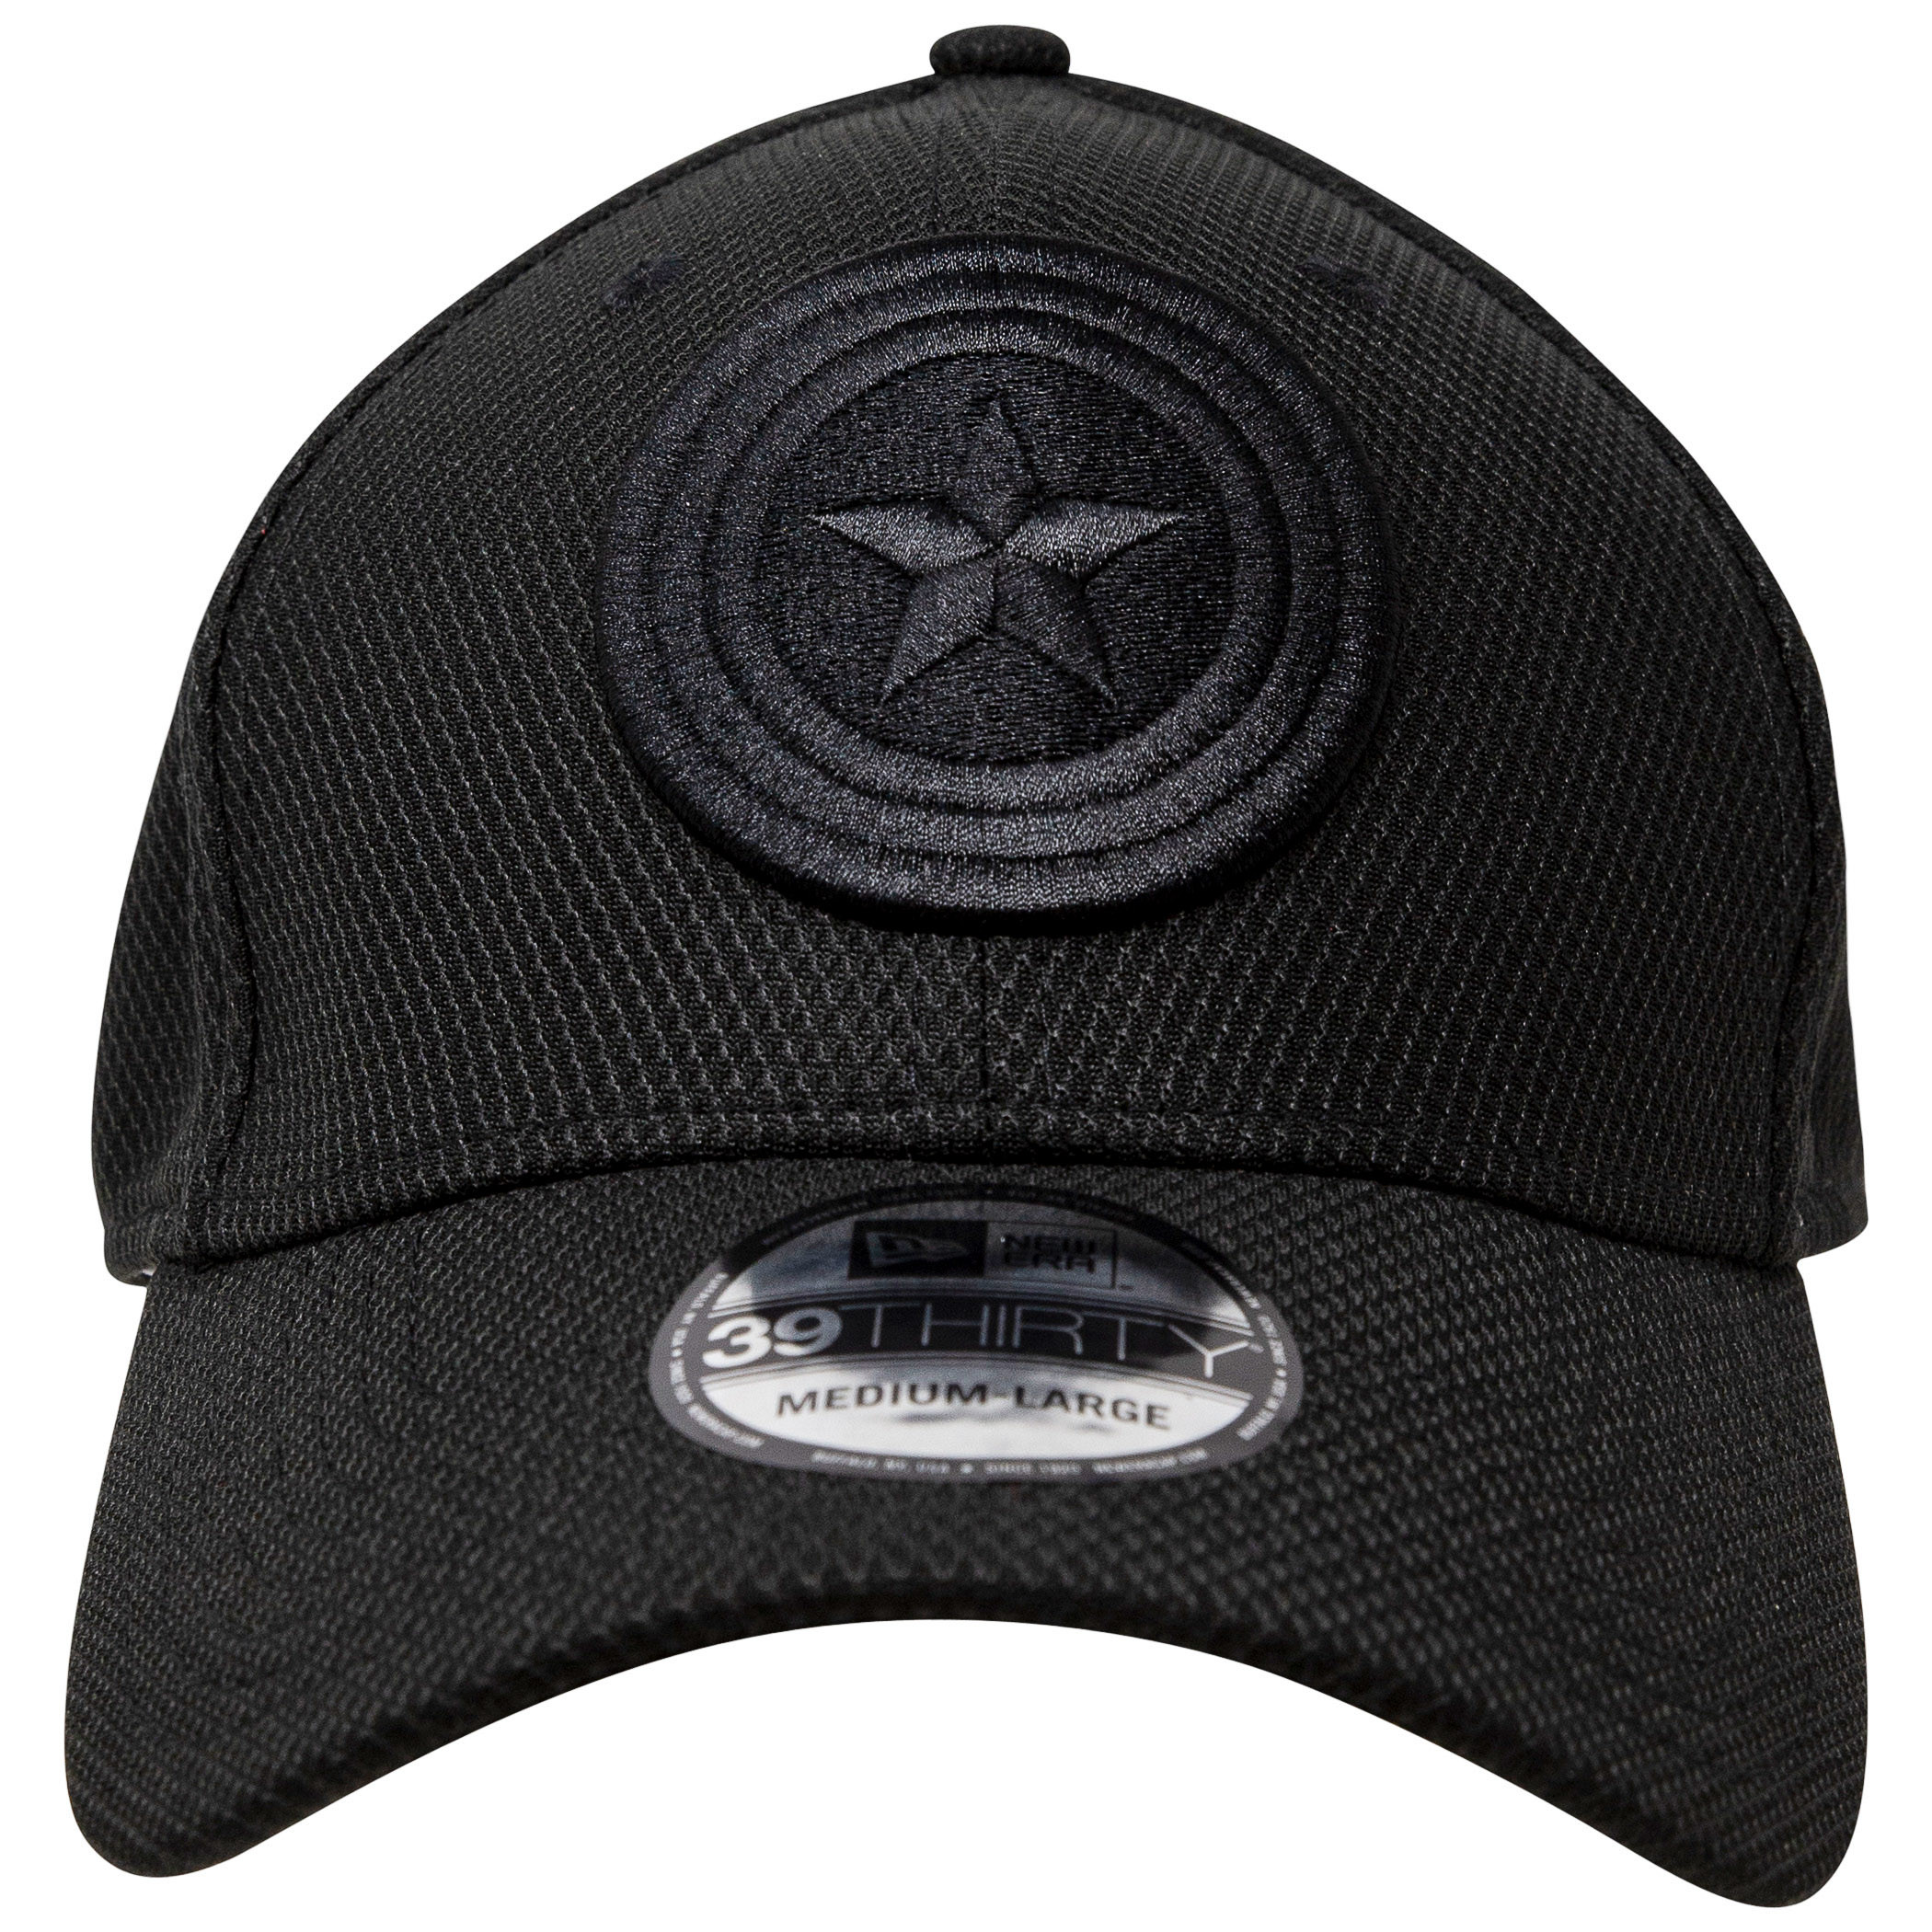 Long Live Captain America MCU Memorial New Era 39Thirty Flex Fitted Hat